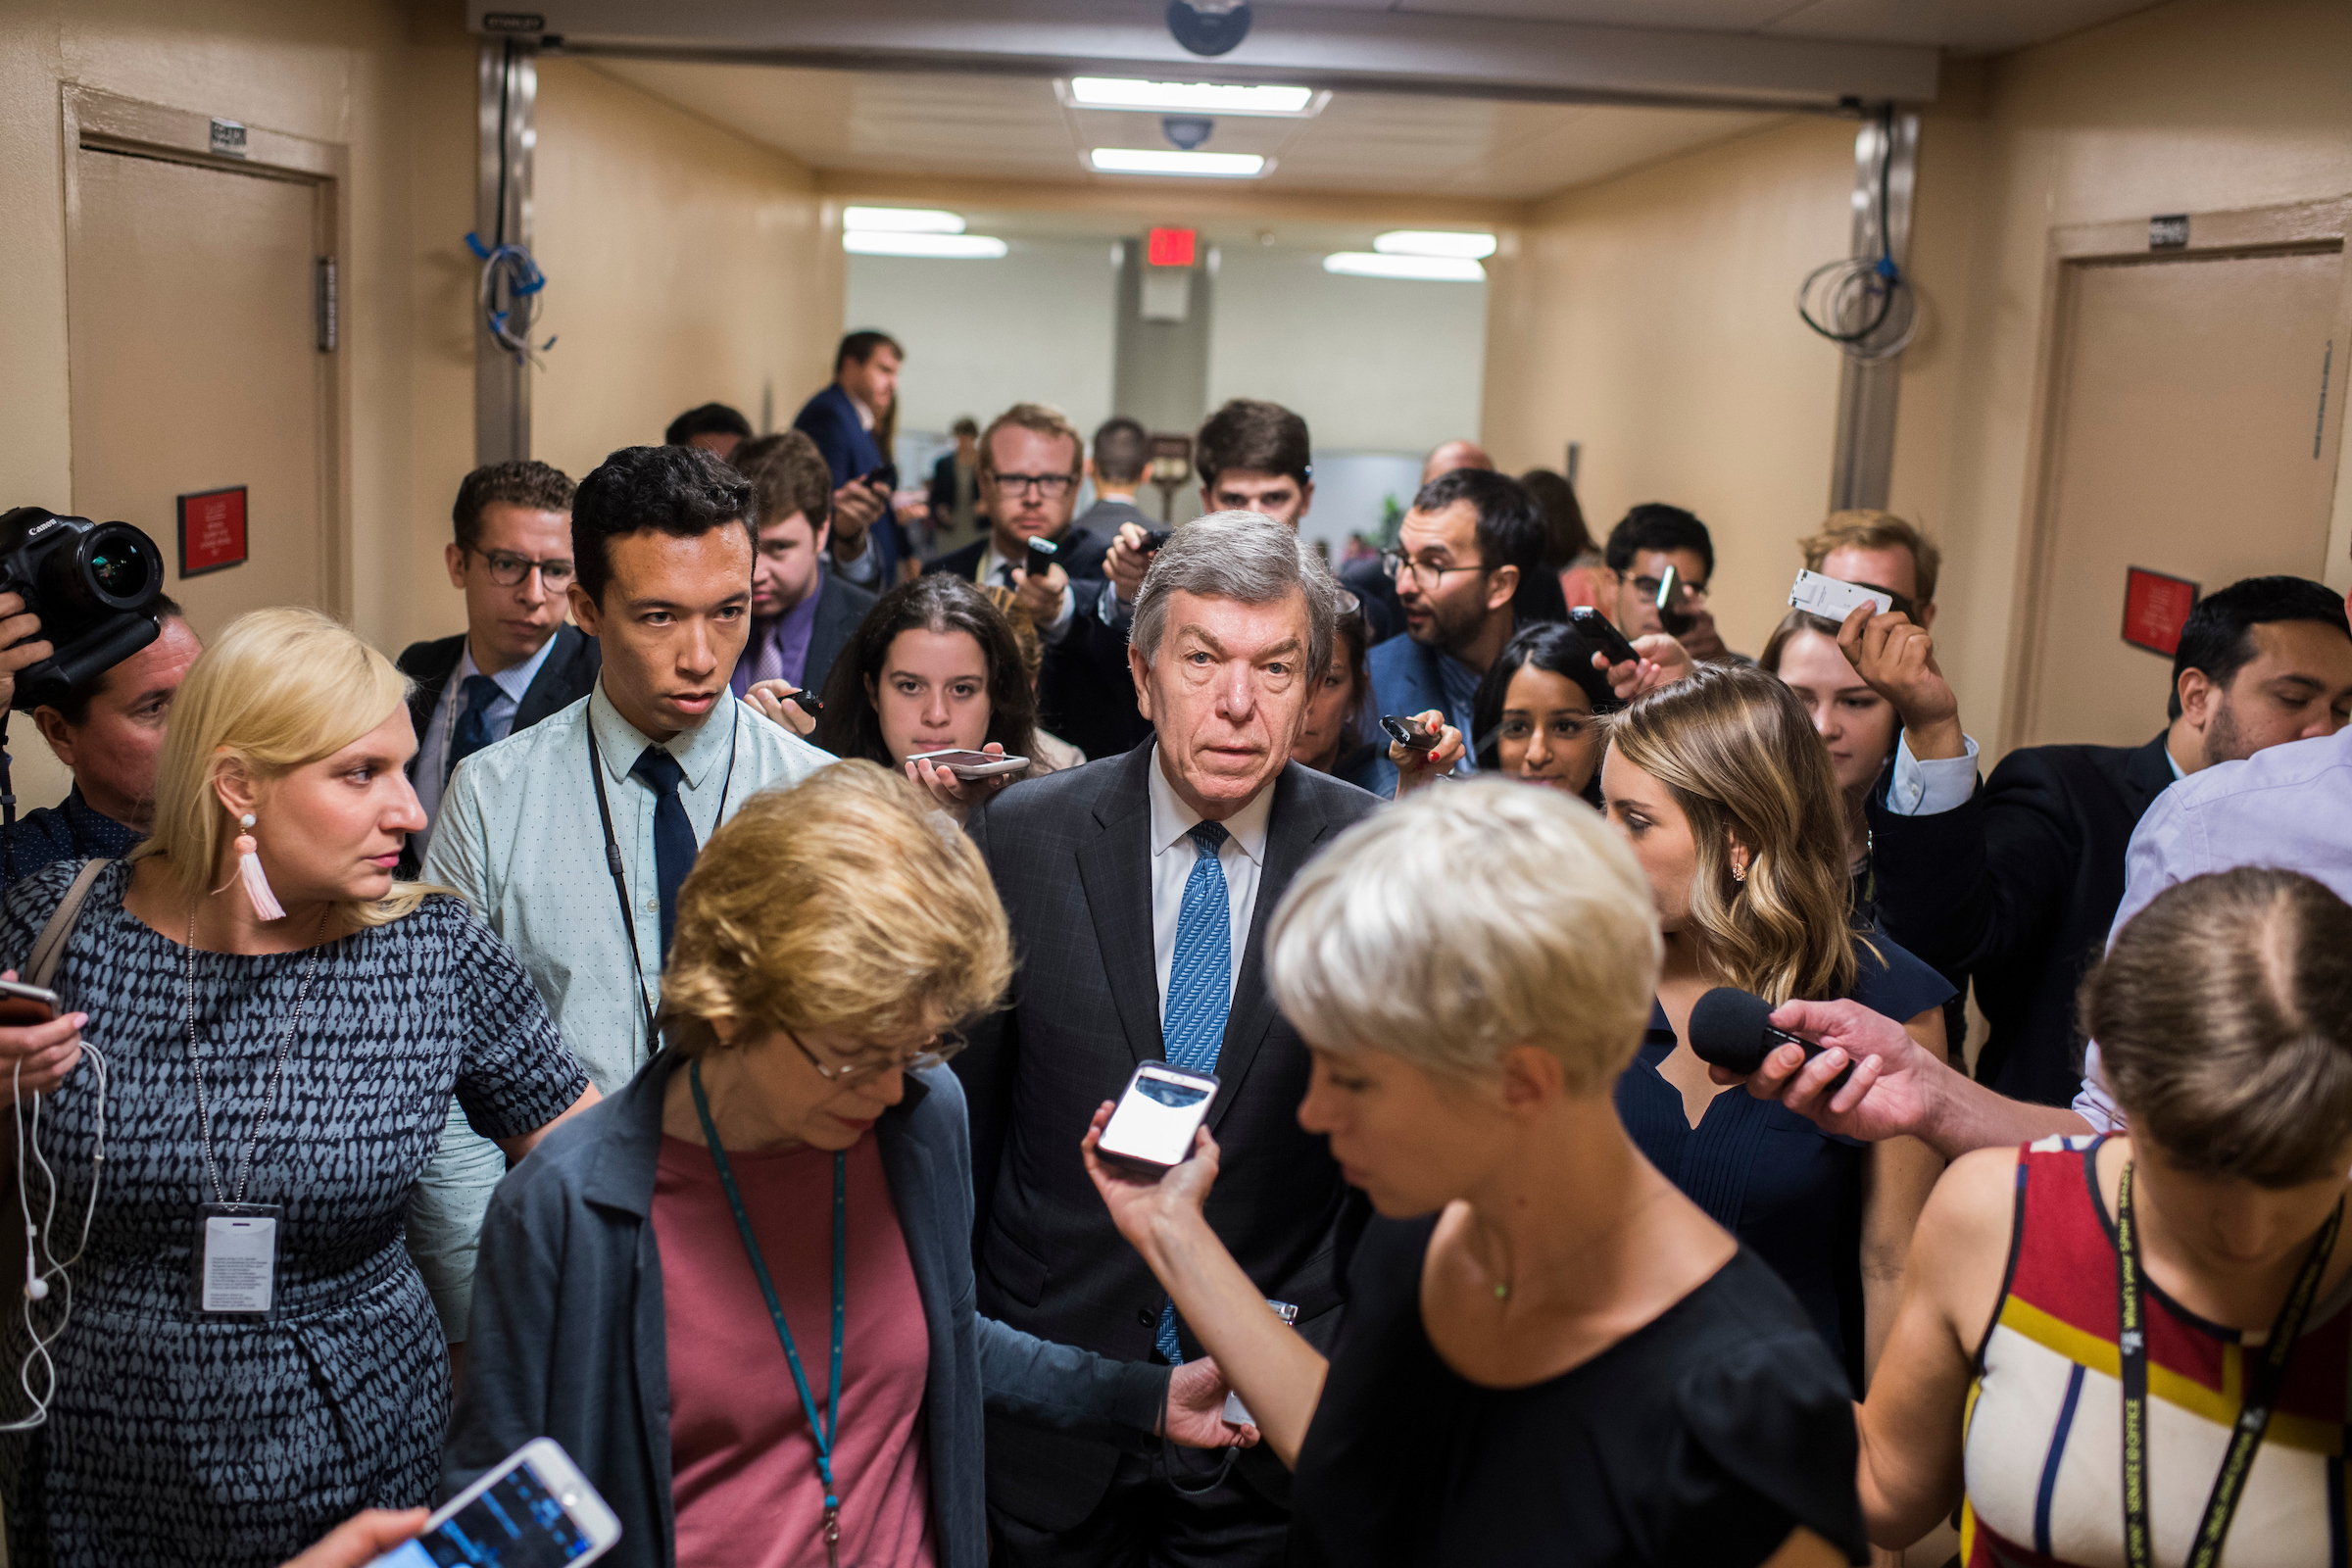 Sen. Roy Blunt, R-Mo., makes his way to the Senate Policy luncheon in the Capitol on Tuesday. (Tom Williams/CQ Roll Call)